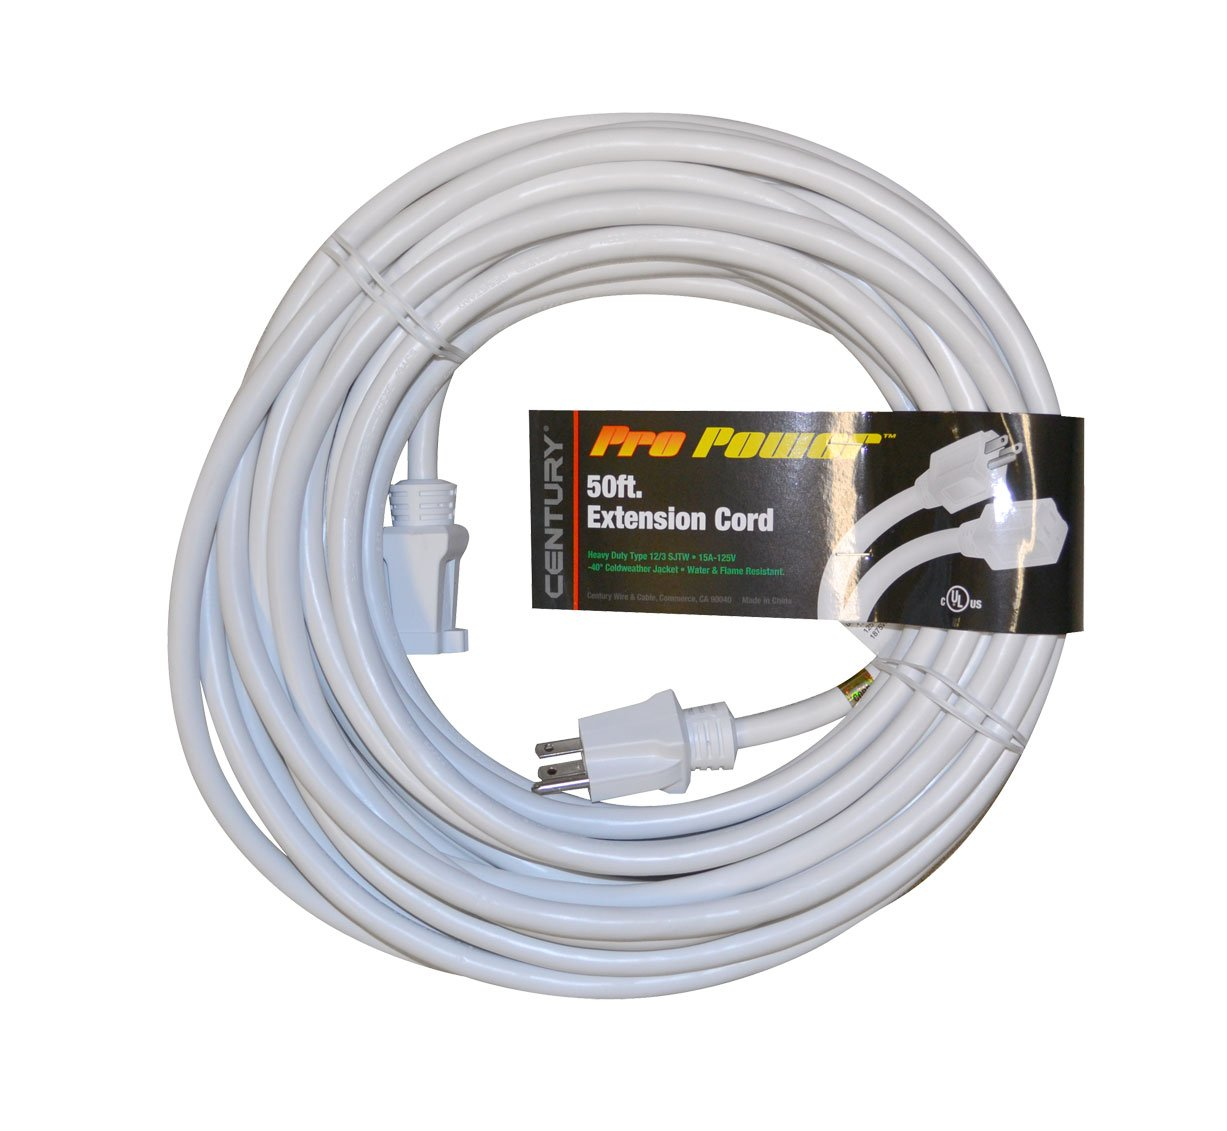 Century Wire Cable Pro Power 50 Foot White Extension Cord Wiring An